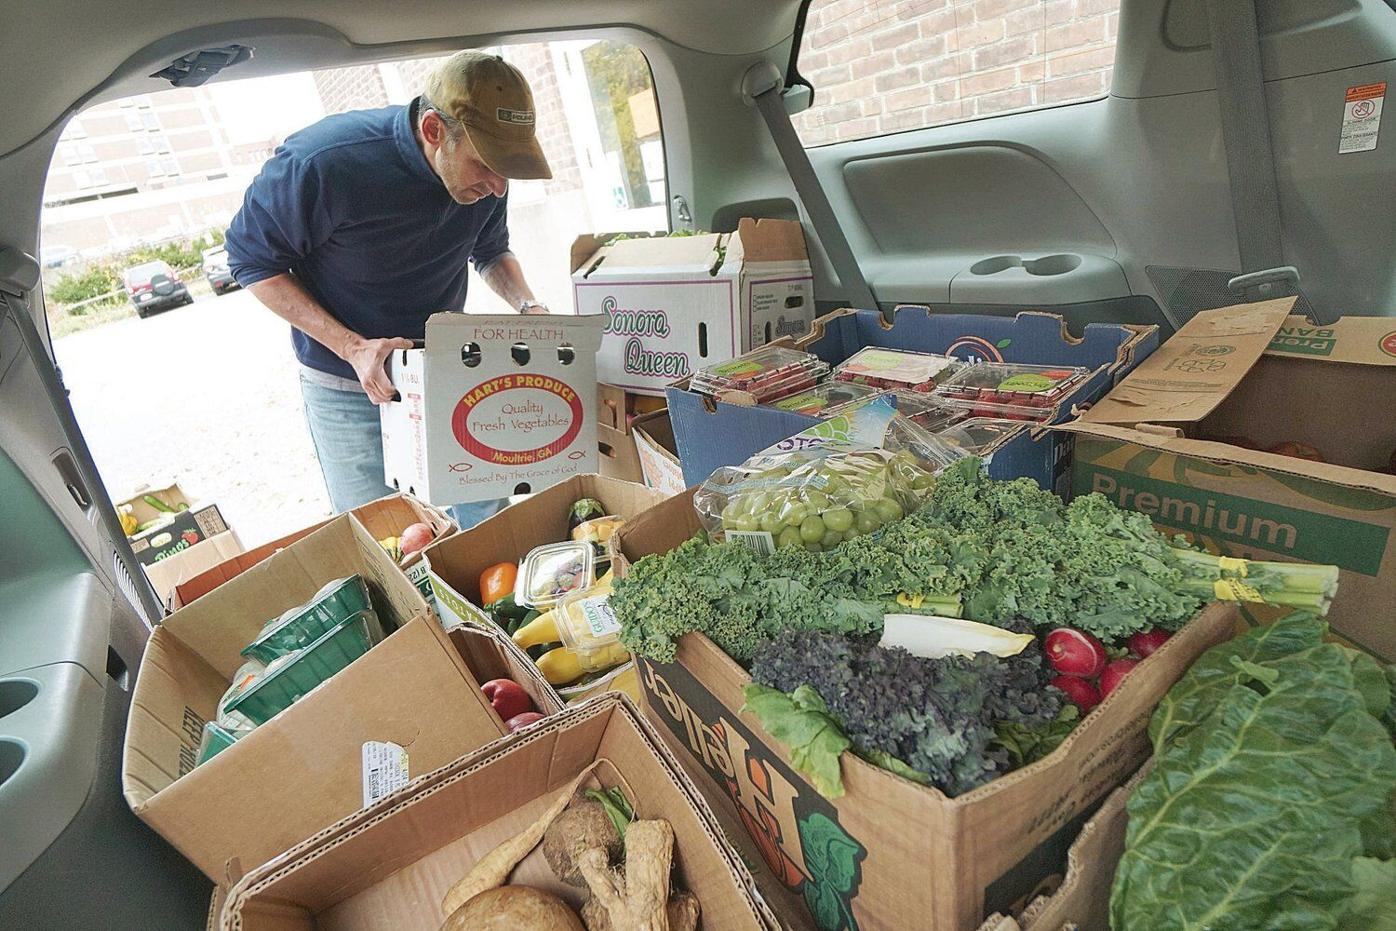 With need rising, Berkshire Bounty's work increasing to solve hunger